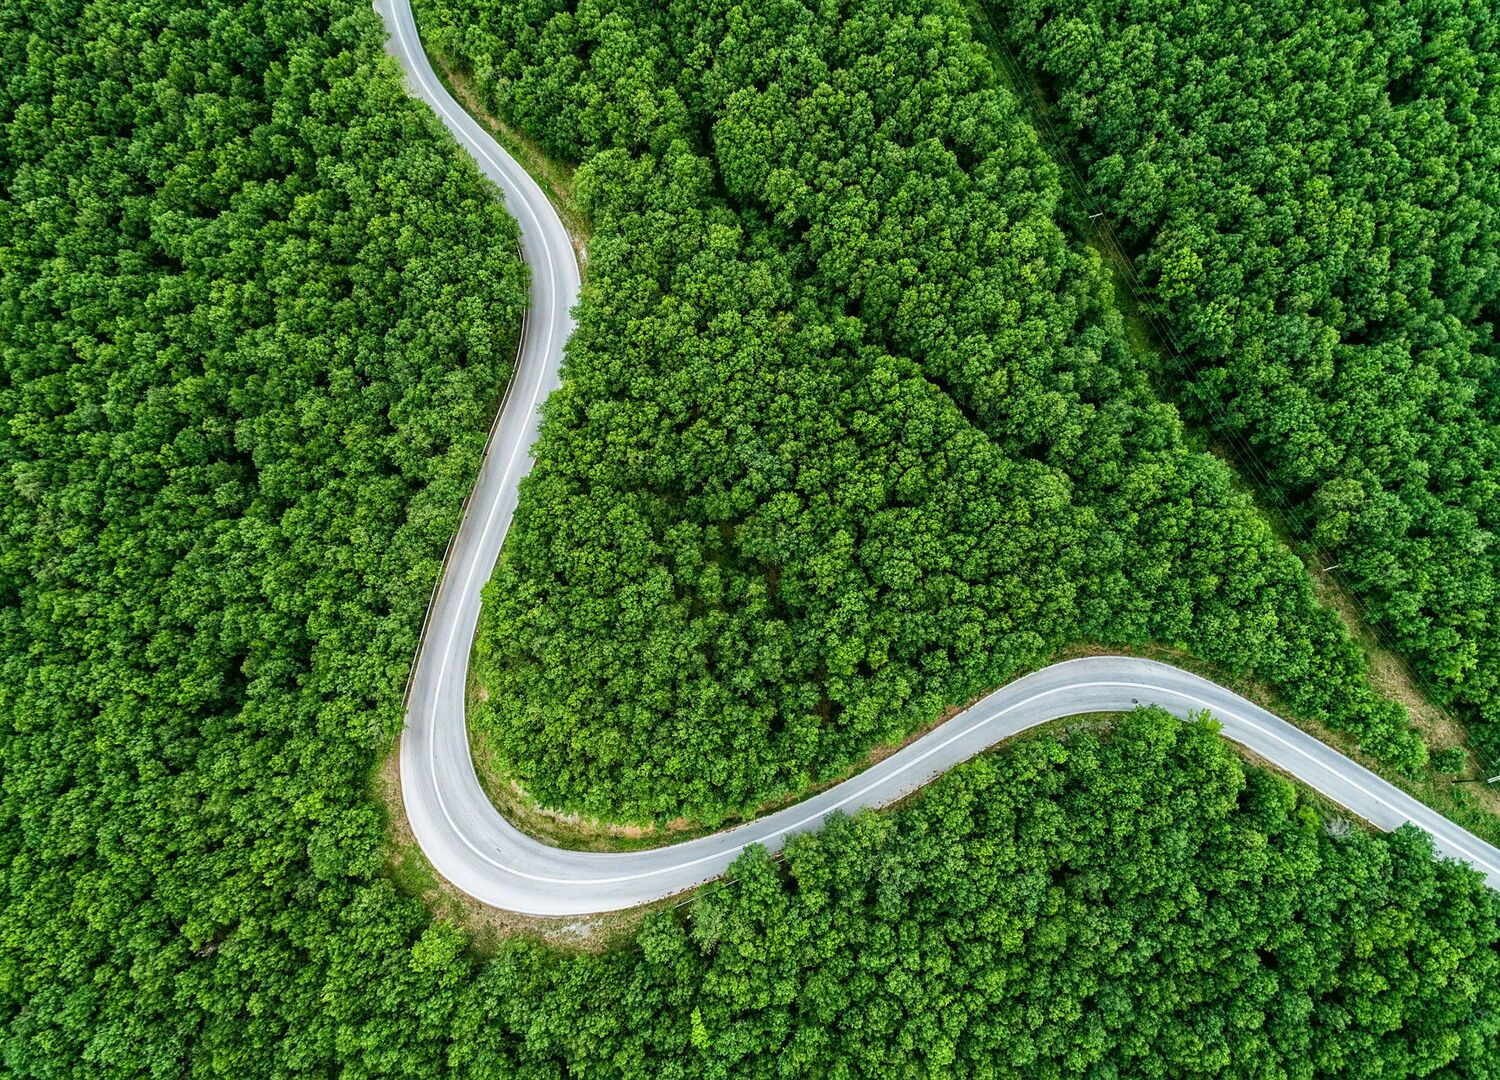 Aerial view of a provincial road passing through a forest in Chalkidiki